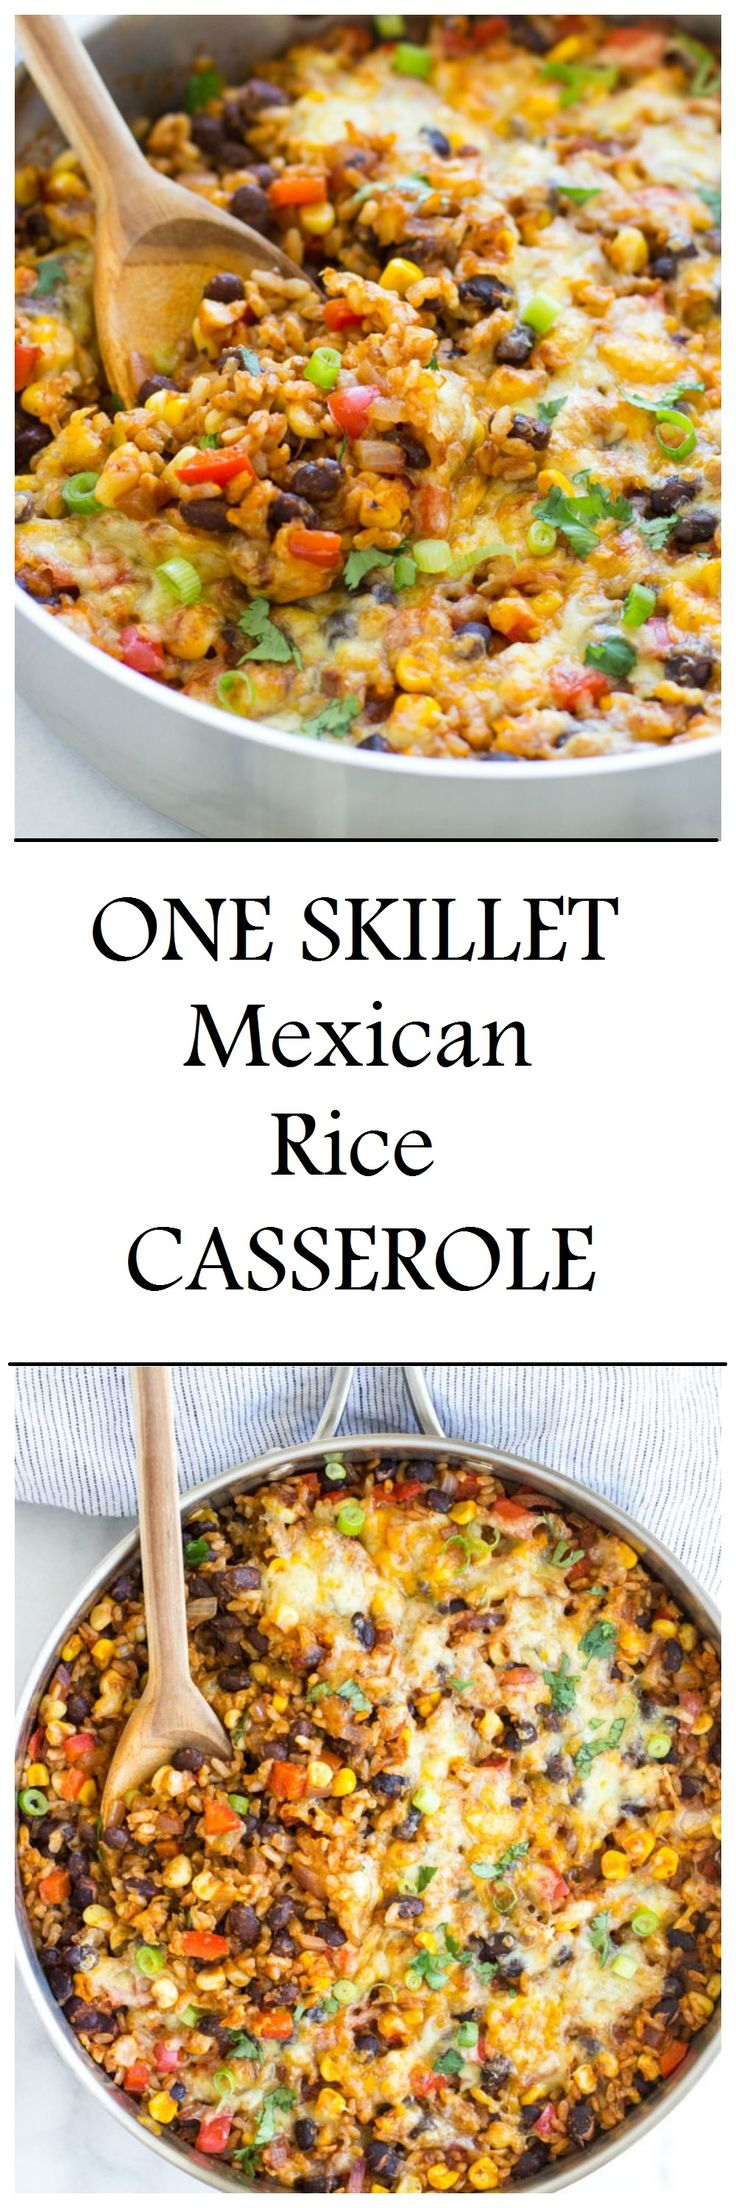 One Skillet Mexican Rice Casserole- ready in just 30 minutes! #vegetarian #meatless #glutenfree @planetrice